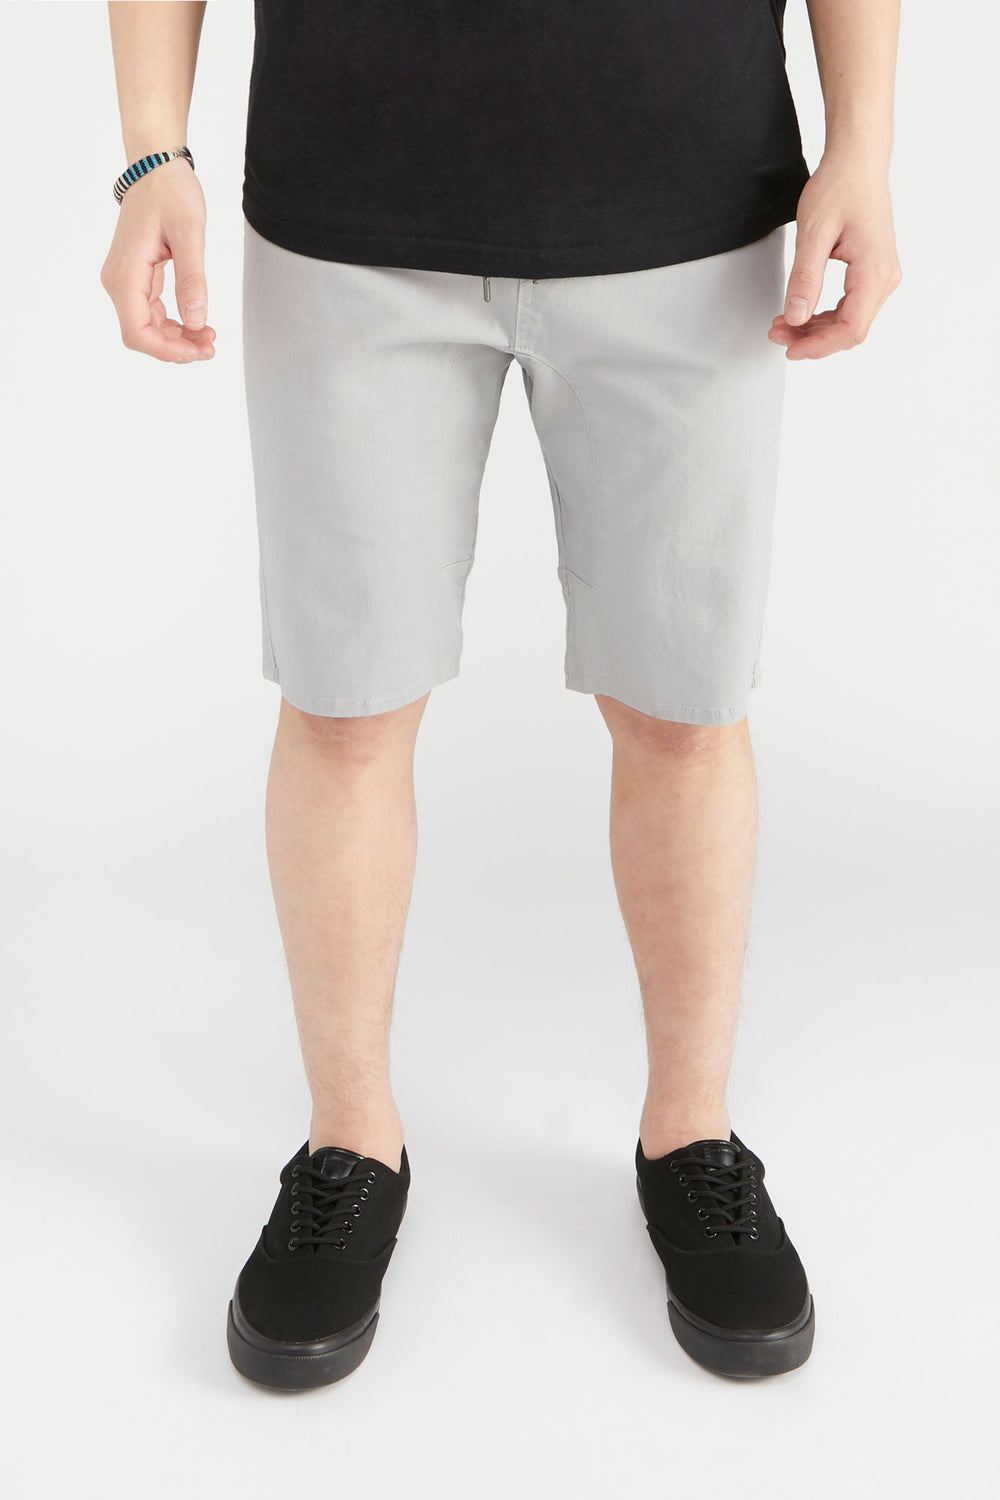 West49 Mens Solid Twill Jogger Short Light Grey